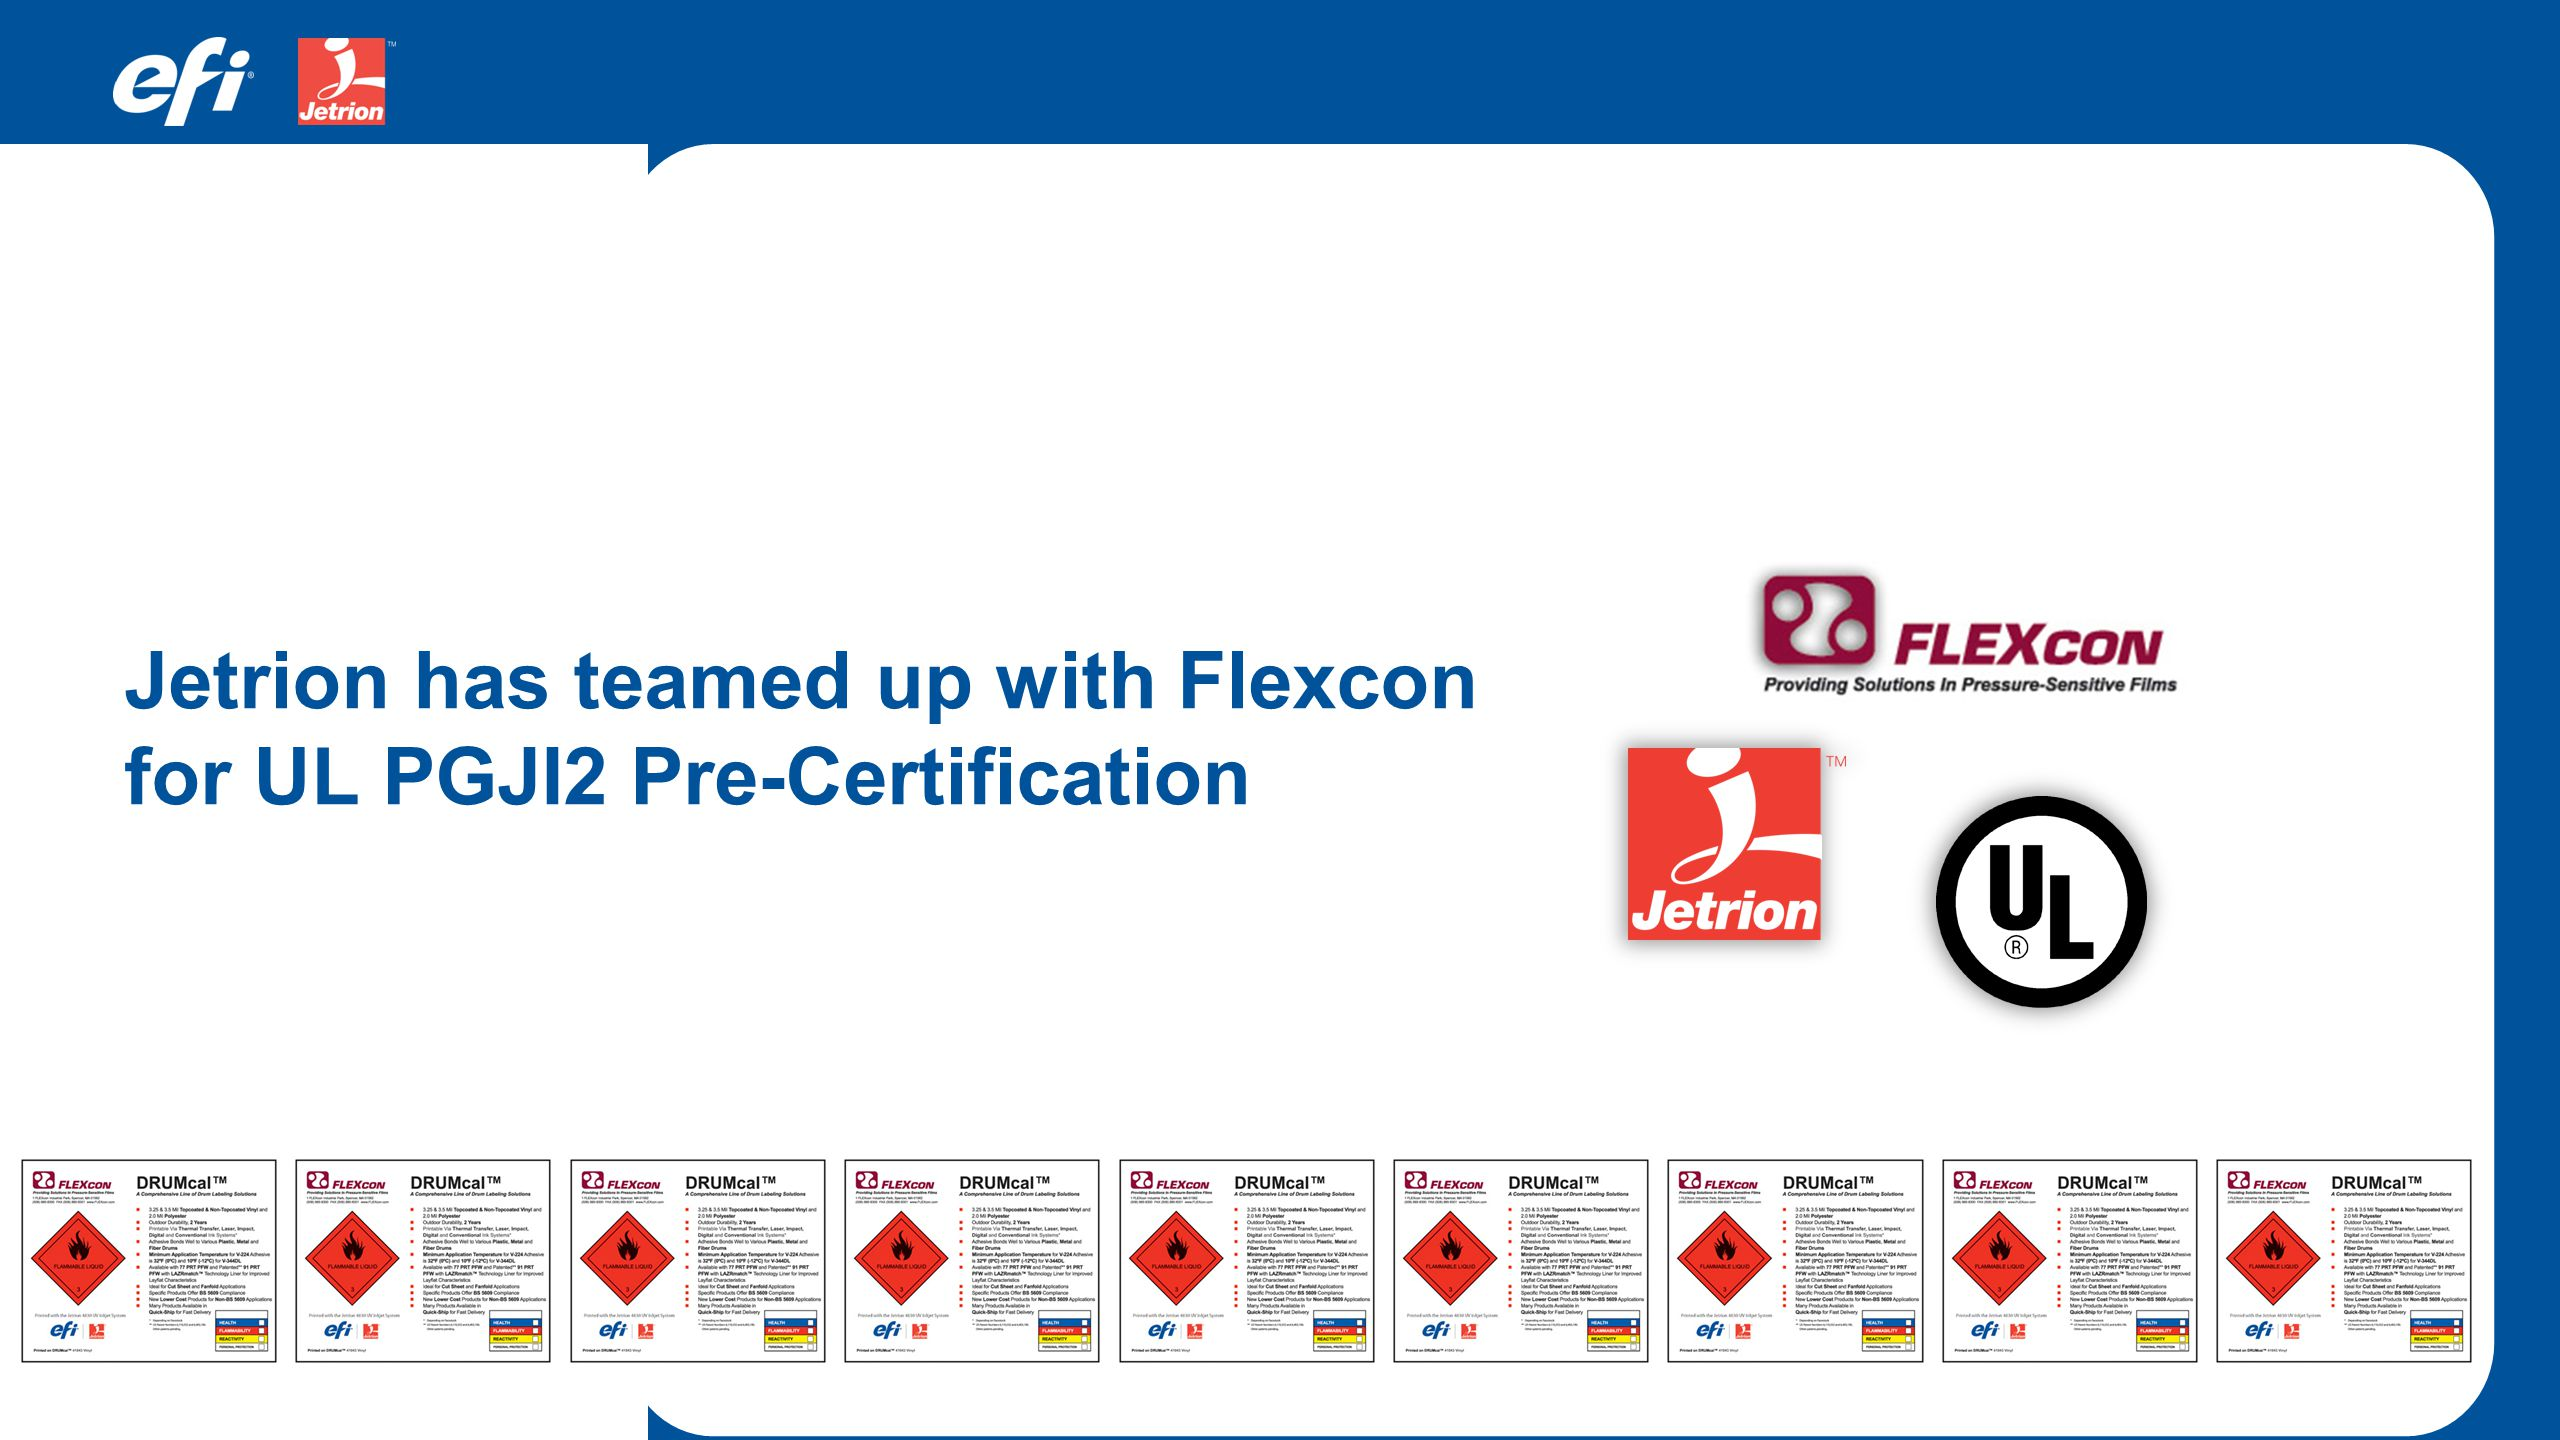 Jetrion has teamed up with Flexcon for UL PGJI2 Pre-Certification